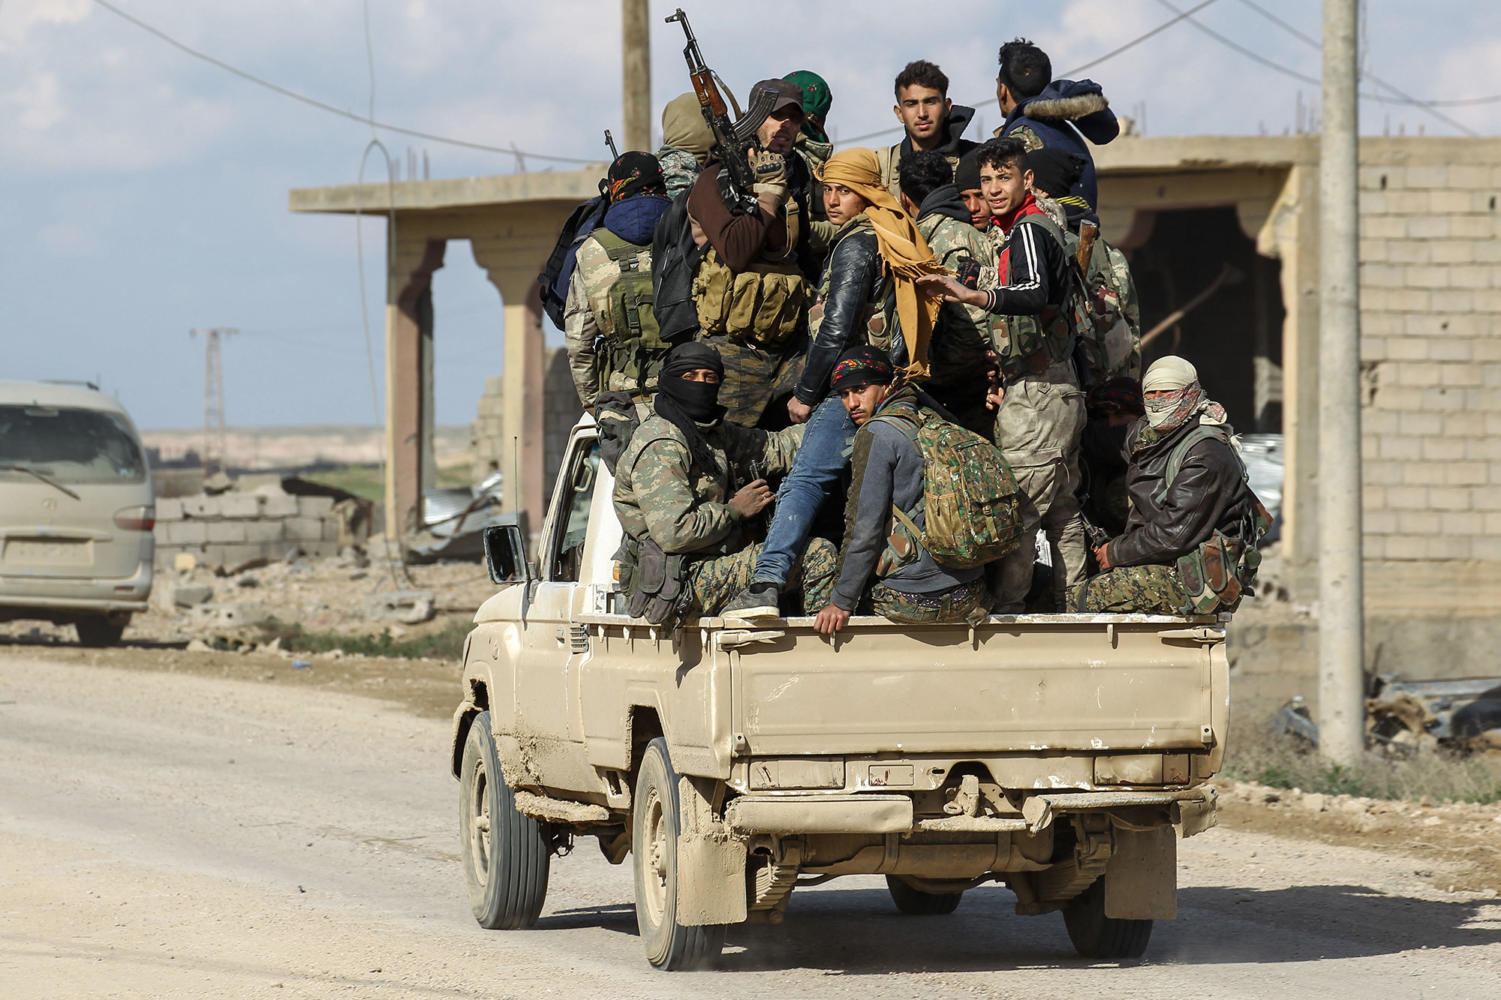 Fighters of the Syrian Democratic Forces, a U.S.-allied Kurdish-led rebel group, patrol through the Islamic State-held village of Baghouz in the eastern Syrian province of Deir Ezzor. SDF officials have said the extremists are clinging to an area less than a square kilometer in the village of Baghouz and preventing more than 1,000 civilians from leaving the area.